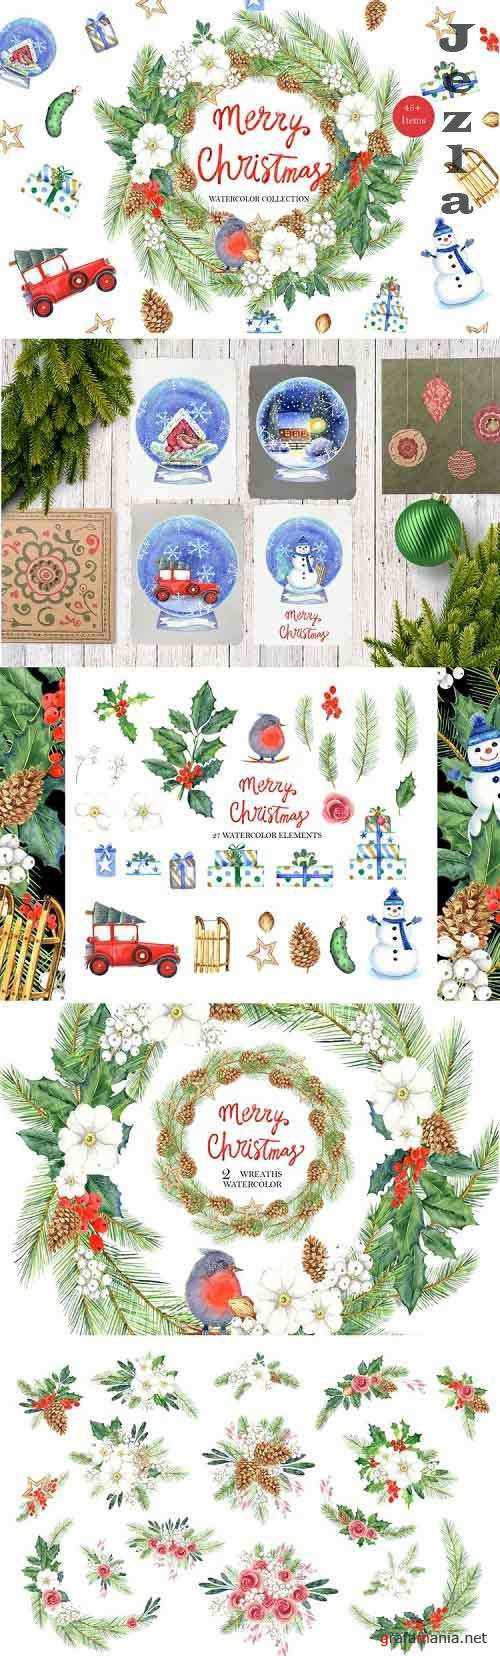 Merry Christmas watercolor collection - 1016722